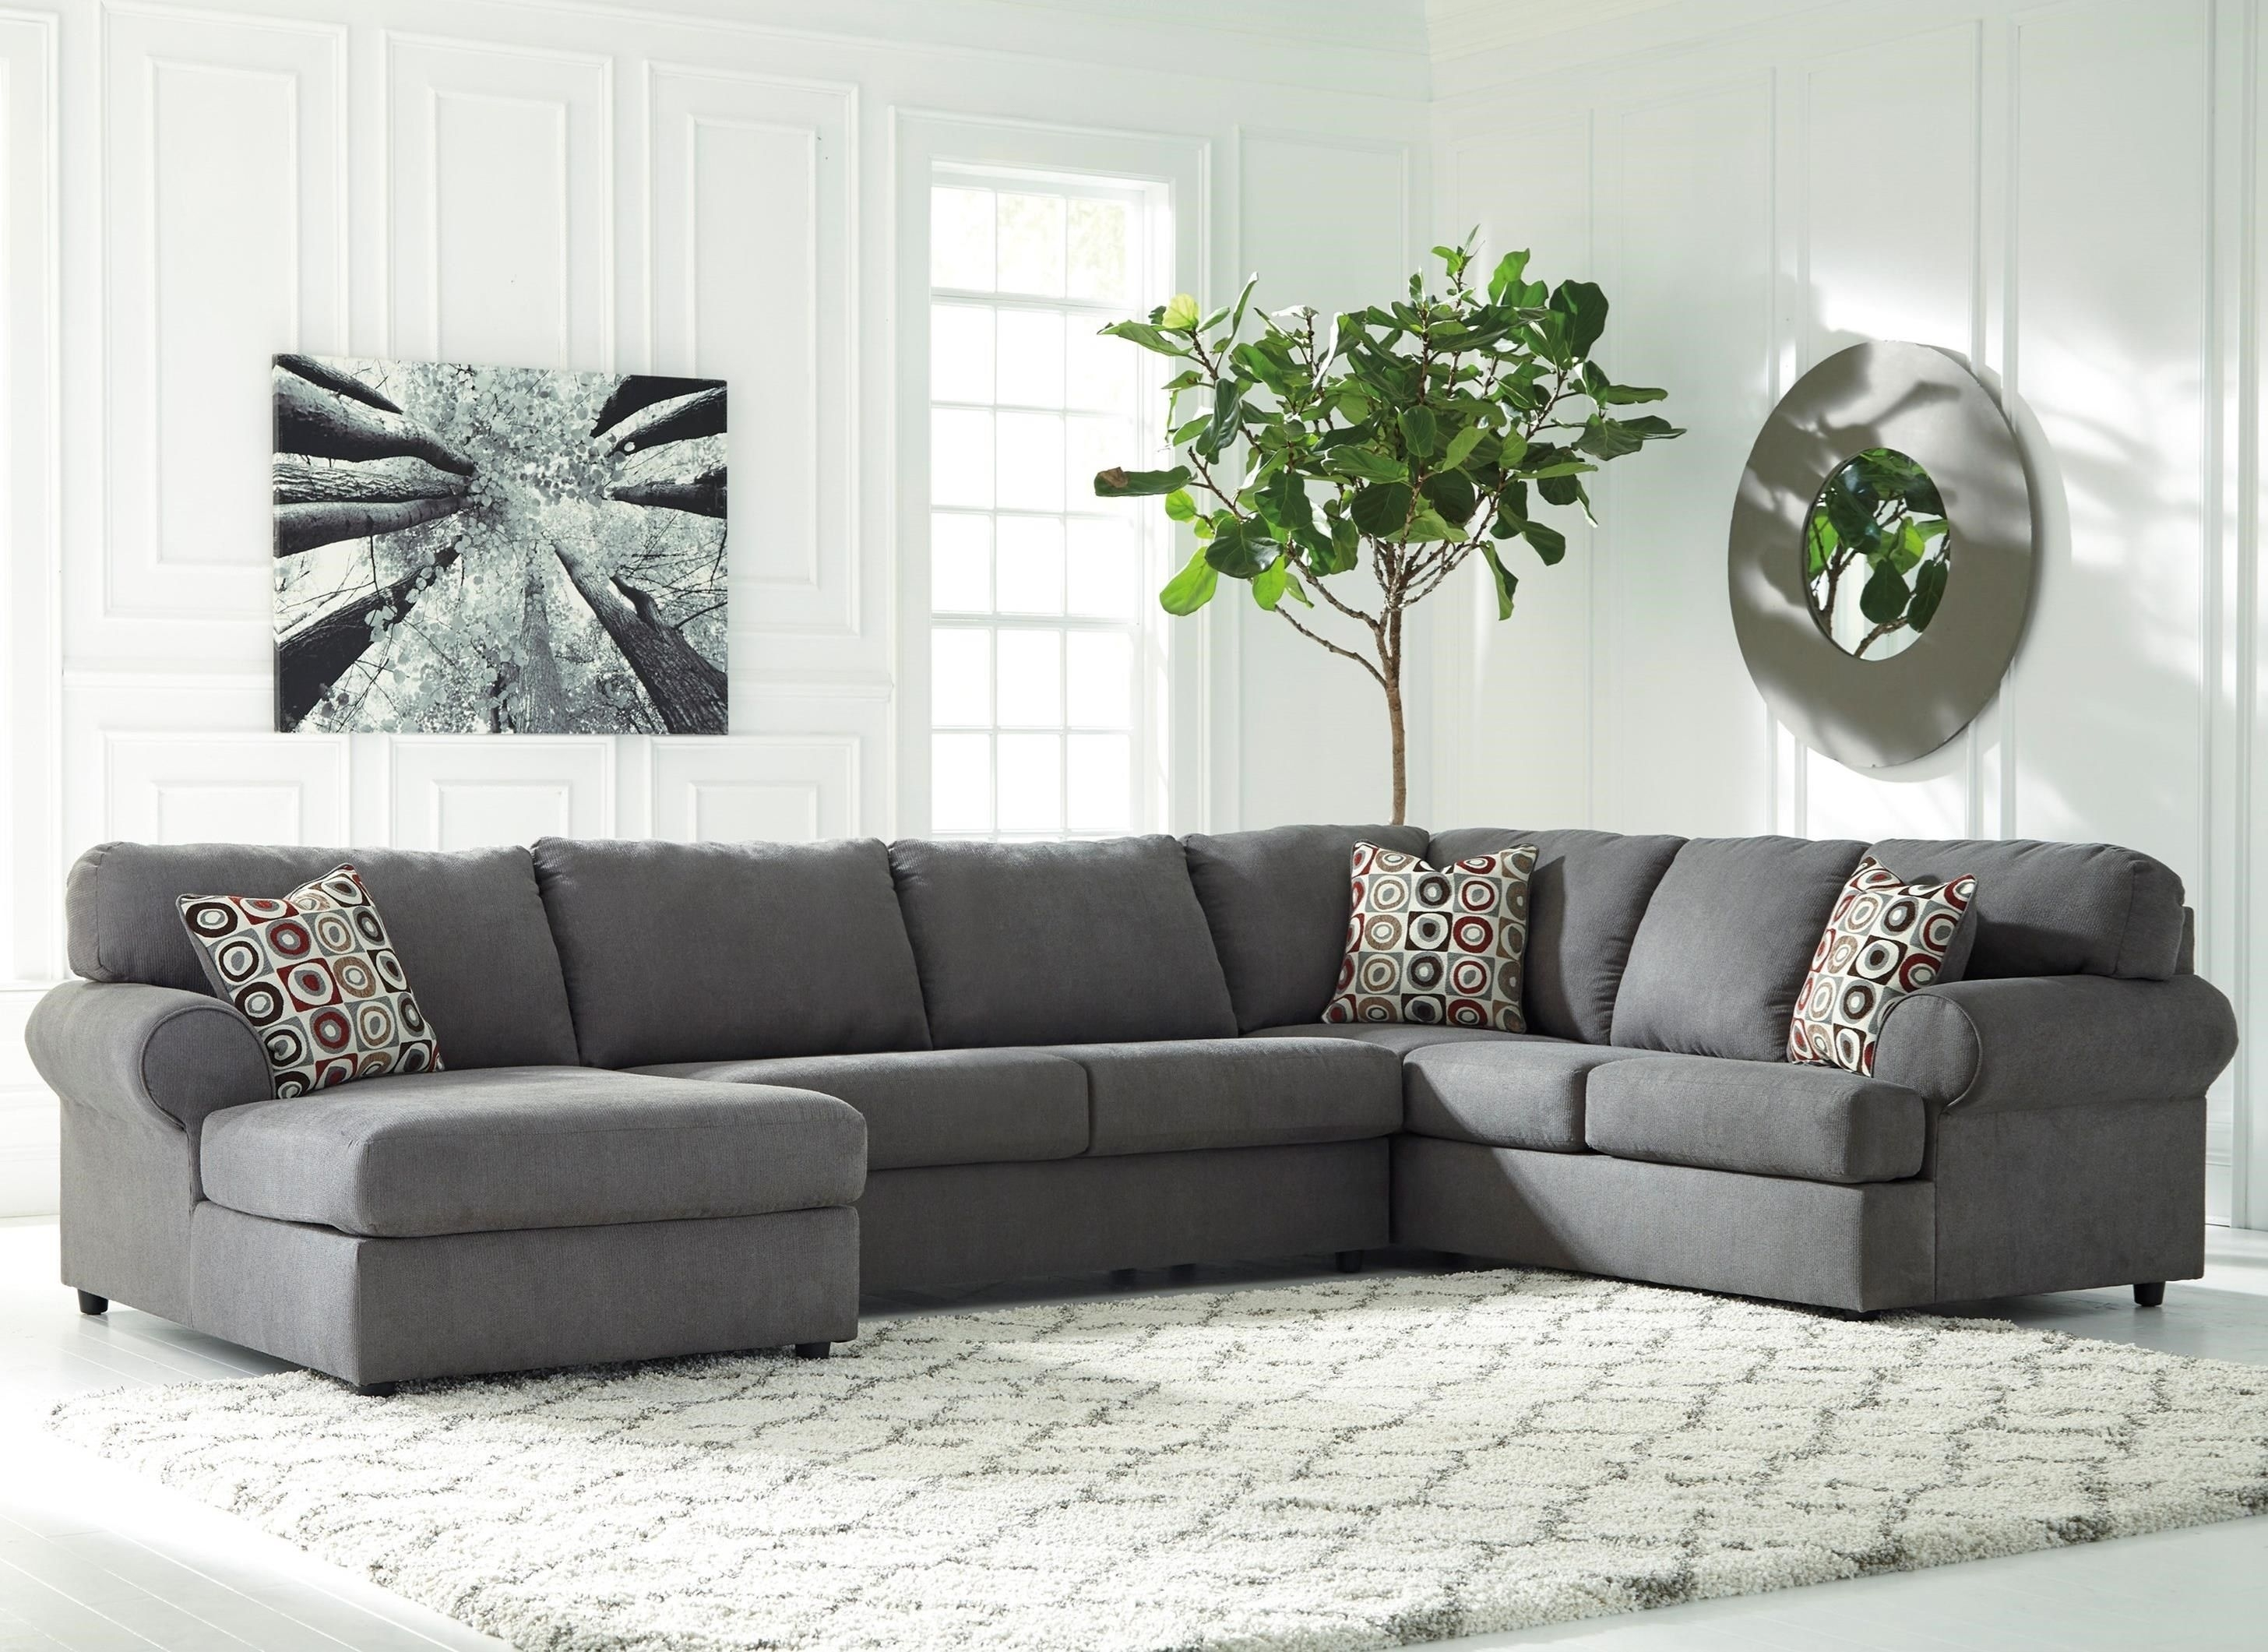 Jayceon 3 Piece Sectional With Left Chaiseashley (Signature Inside Eau Claire Wi Sectional Sofas (View 3 of 10)